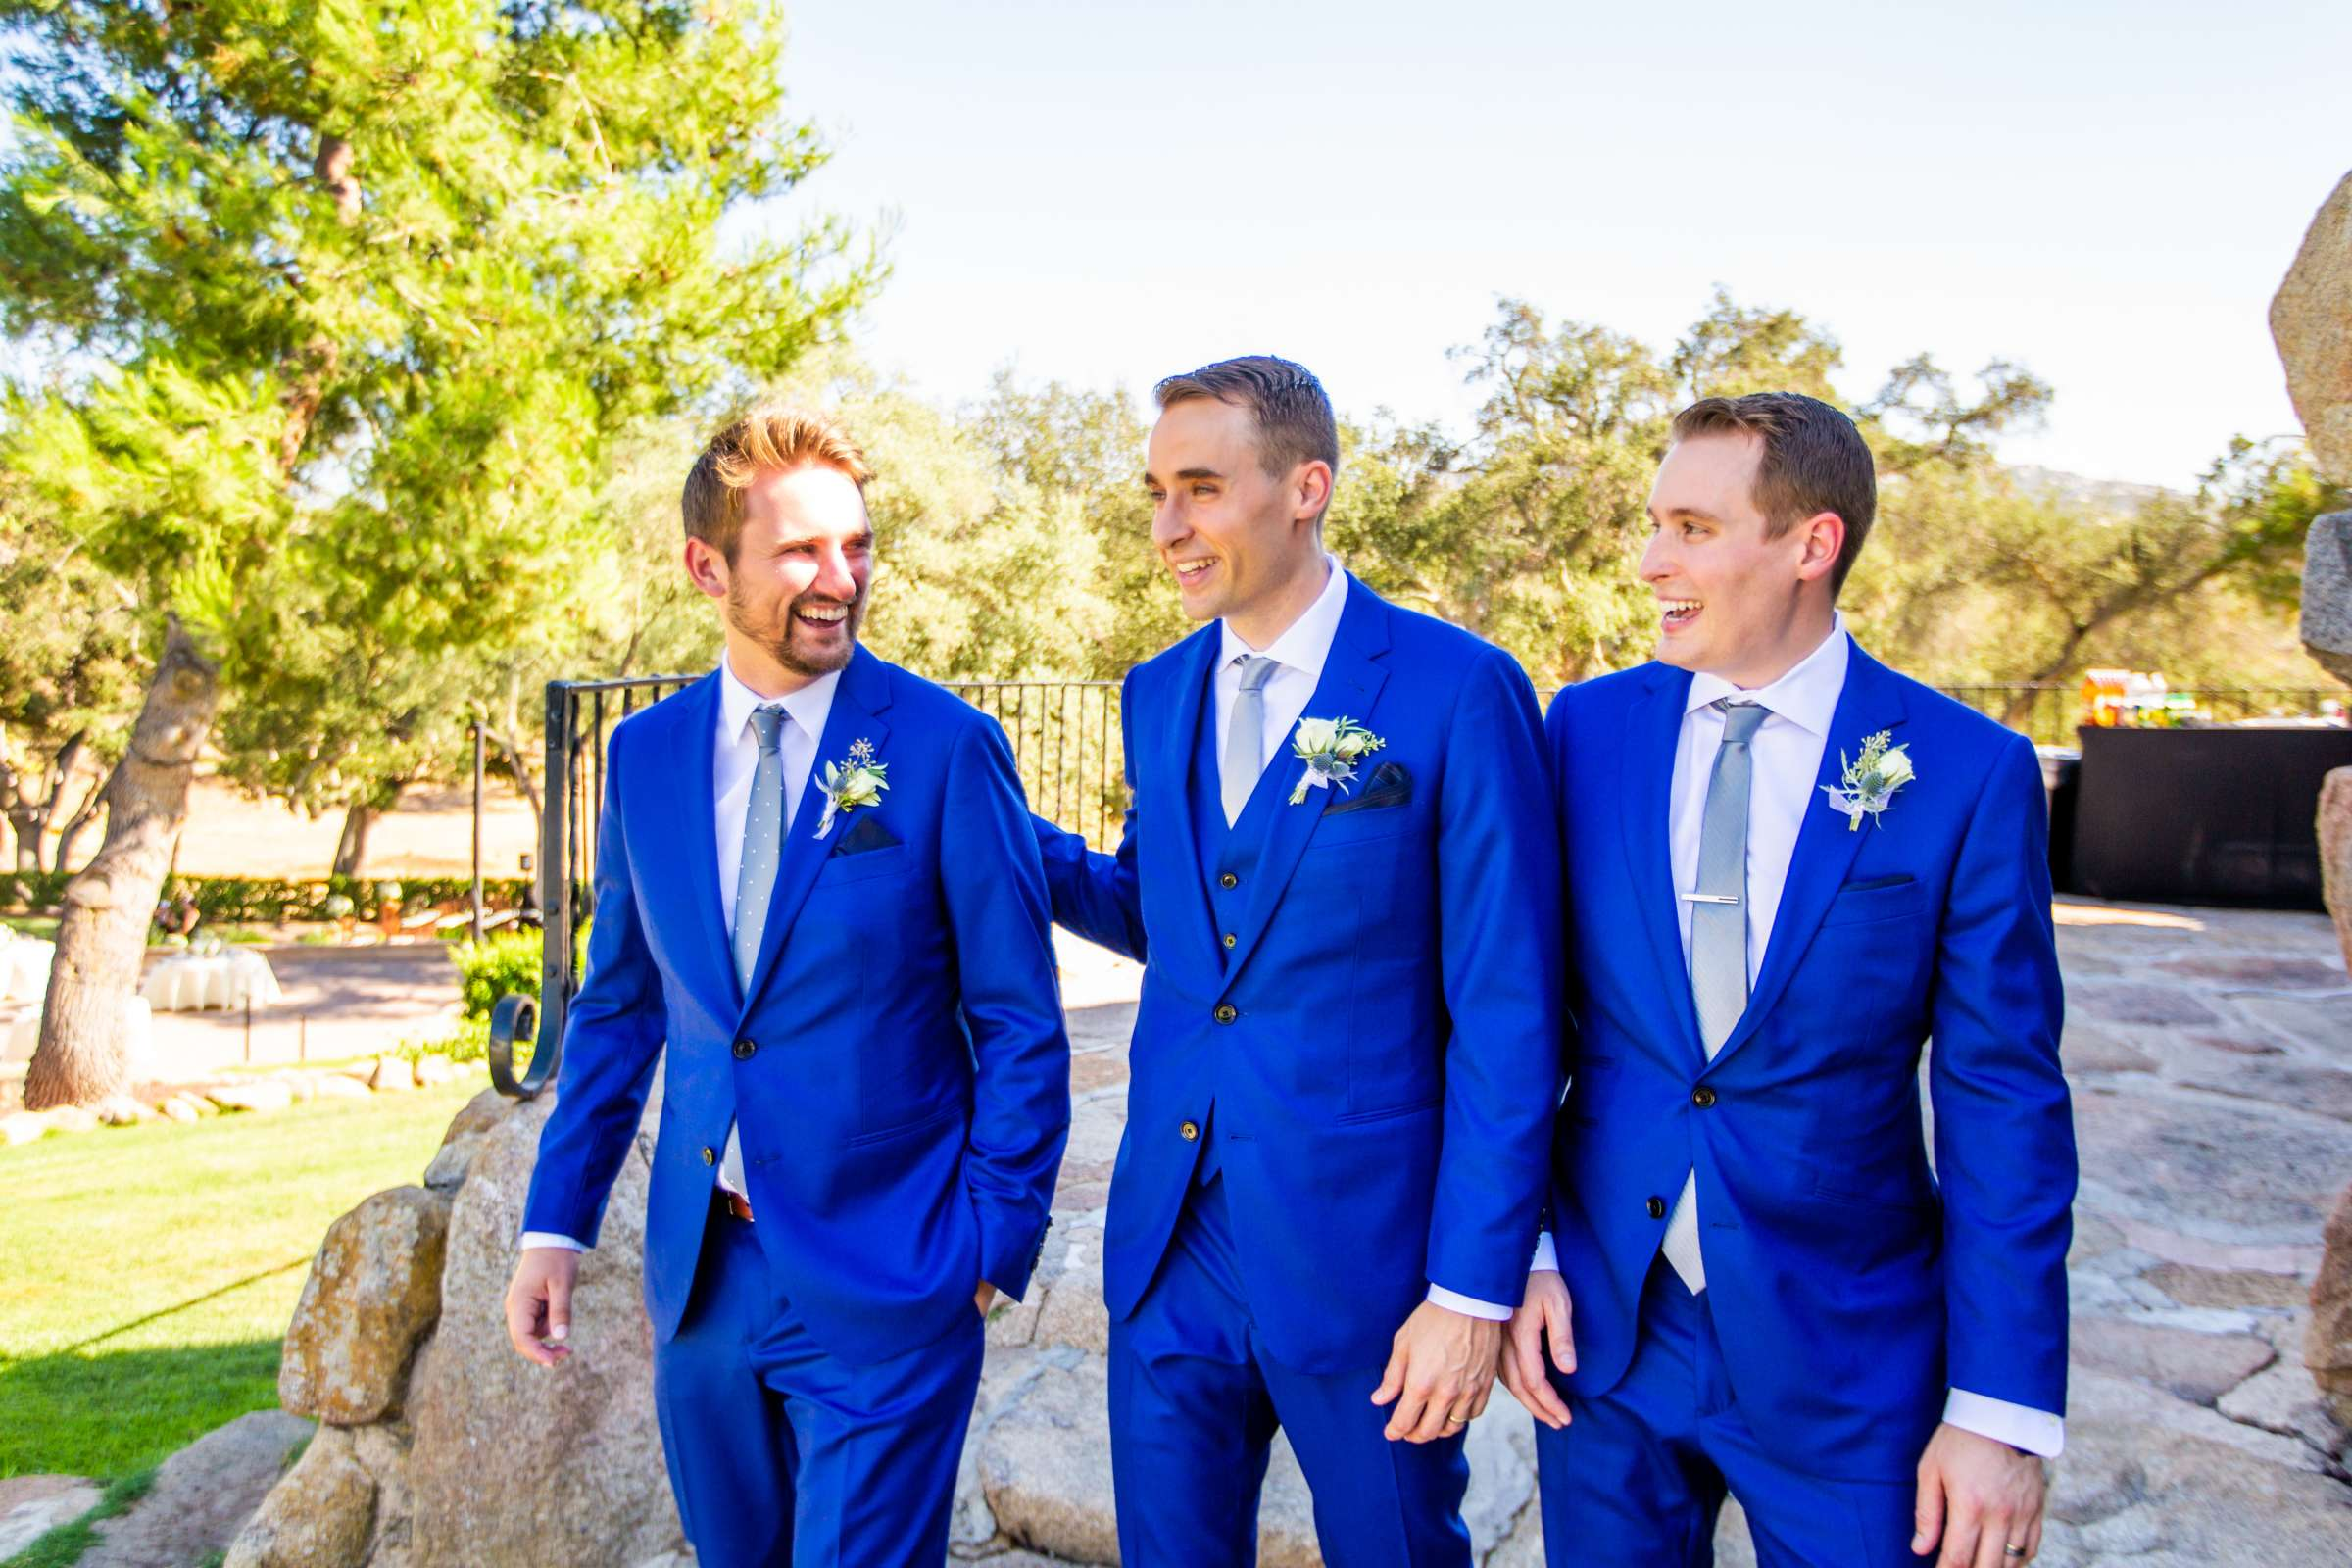 Mt Woodson Castle Wedding coordinated by I Do Weddings, Aya and Jared Wedding Photo #486927 by True Photography